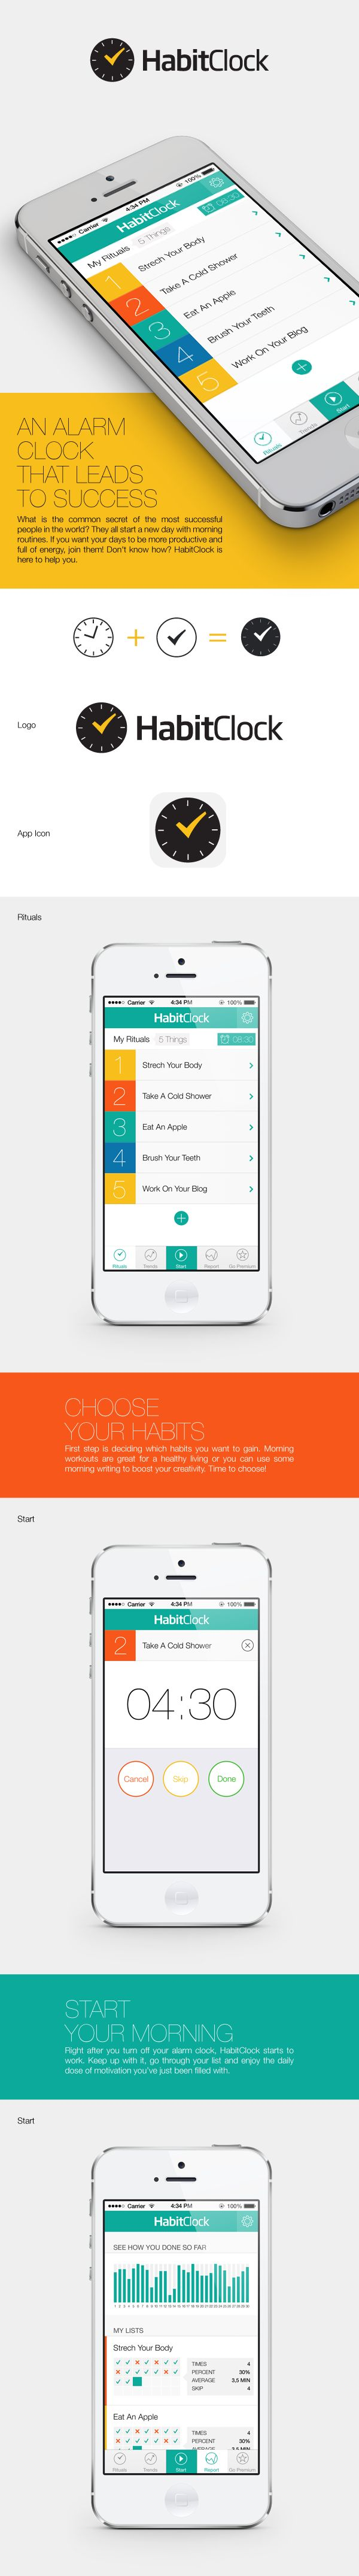 HabitClock App by Kutan URAL, via Behance